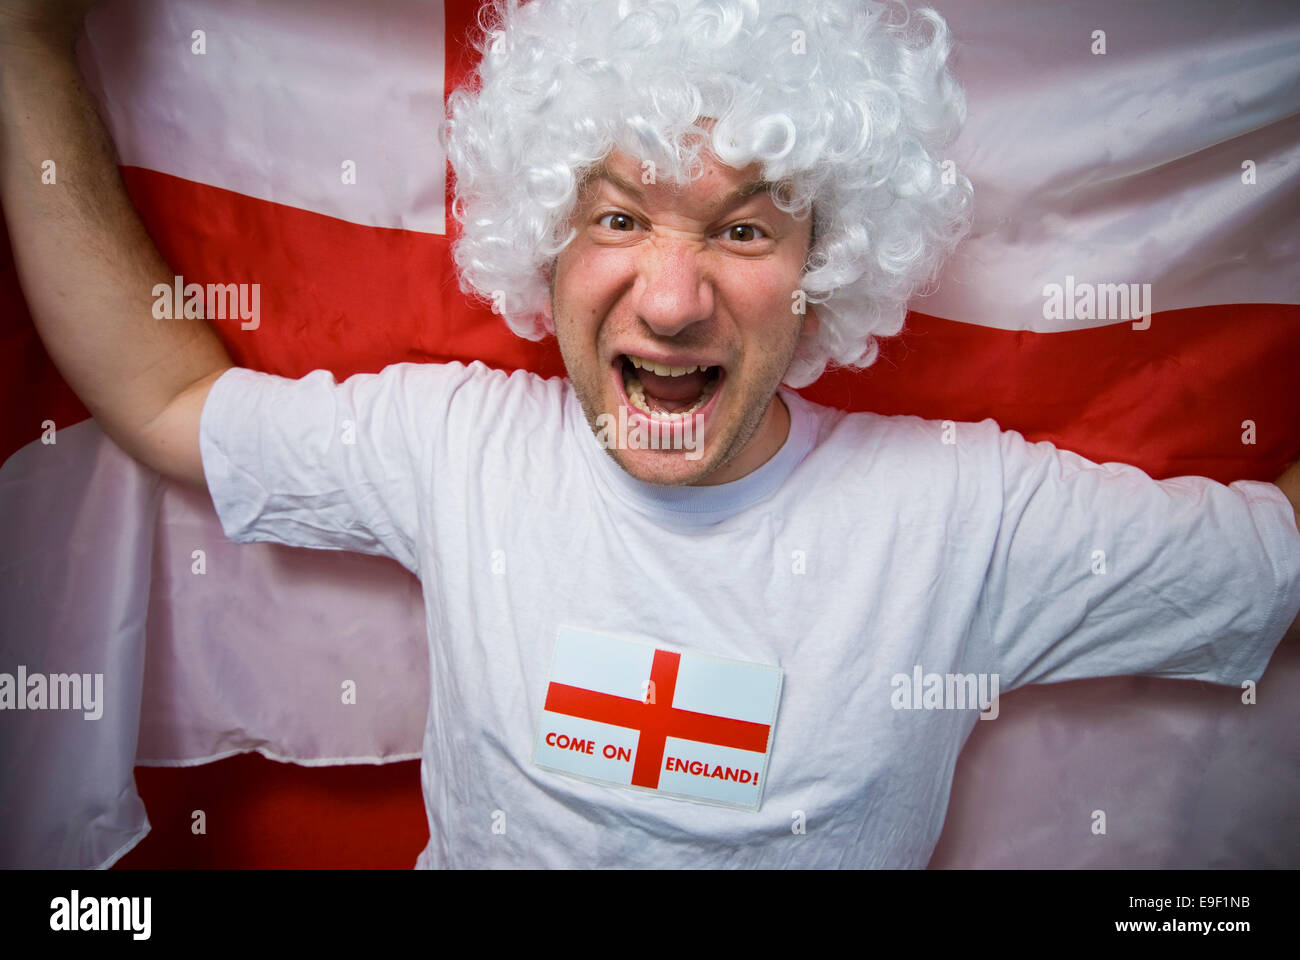 an english football fan waives a st georges flag with a white wig and t shirt - Stock Image